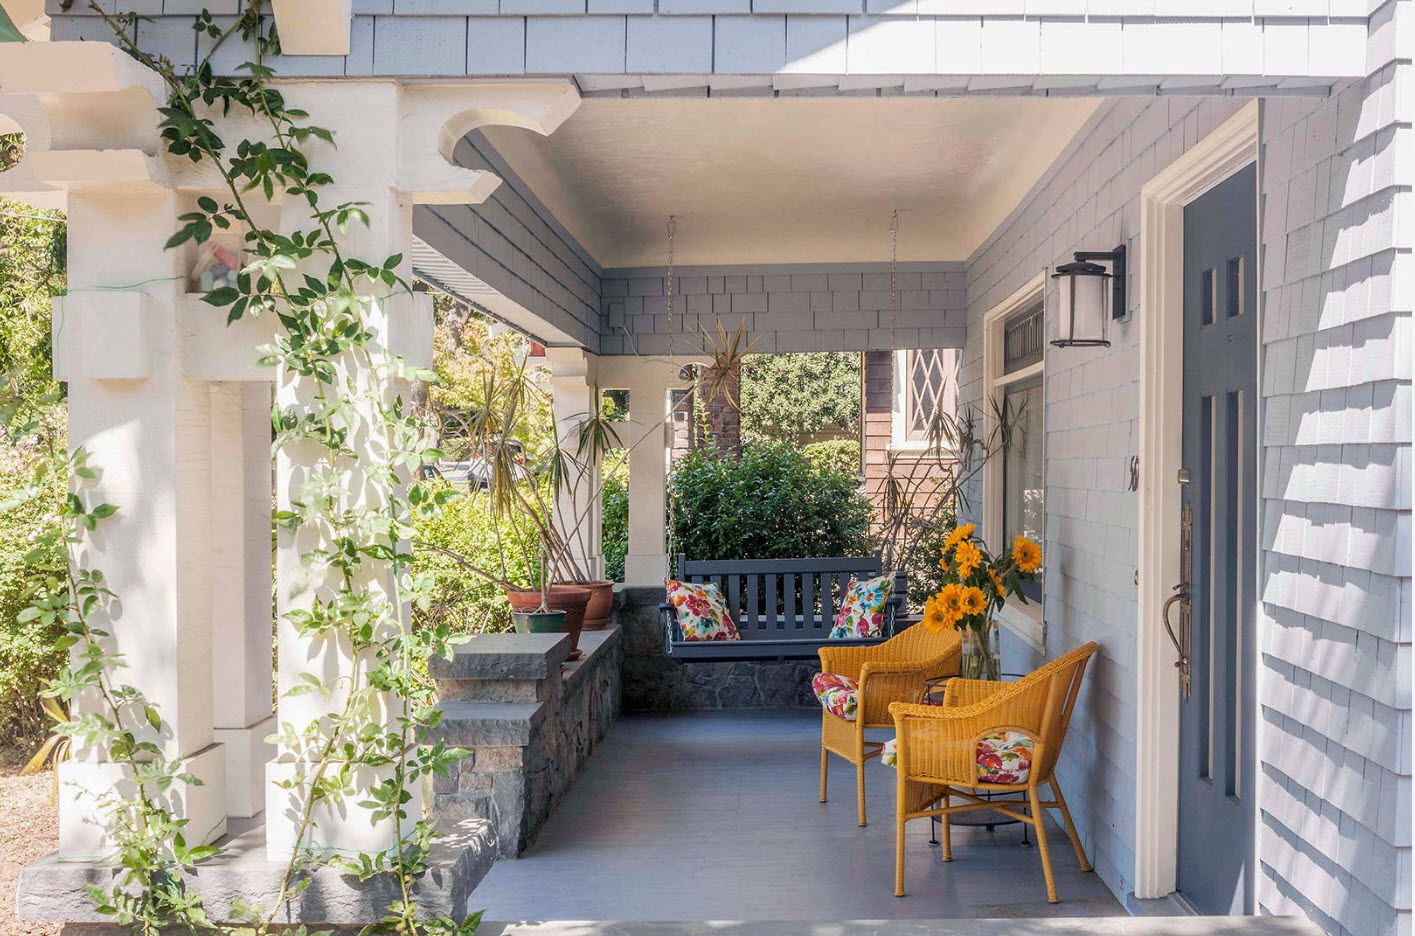 Country House Porch Decoration & Design Ideas. Green wall at the patio